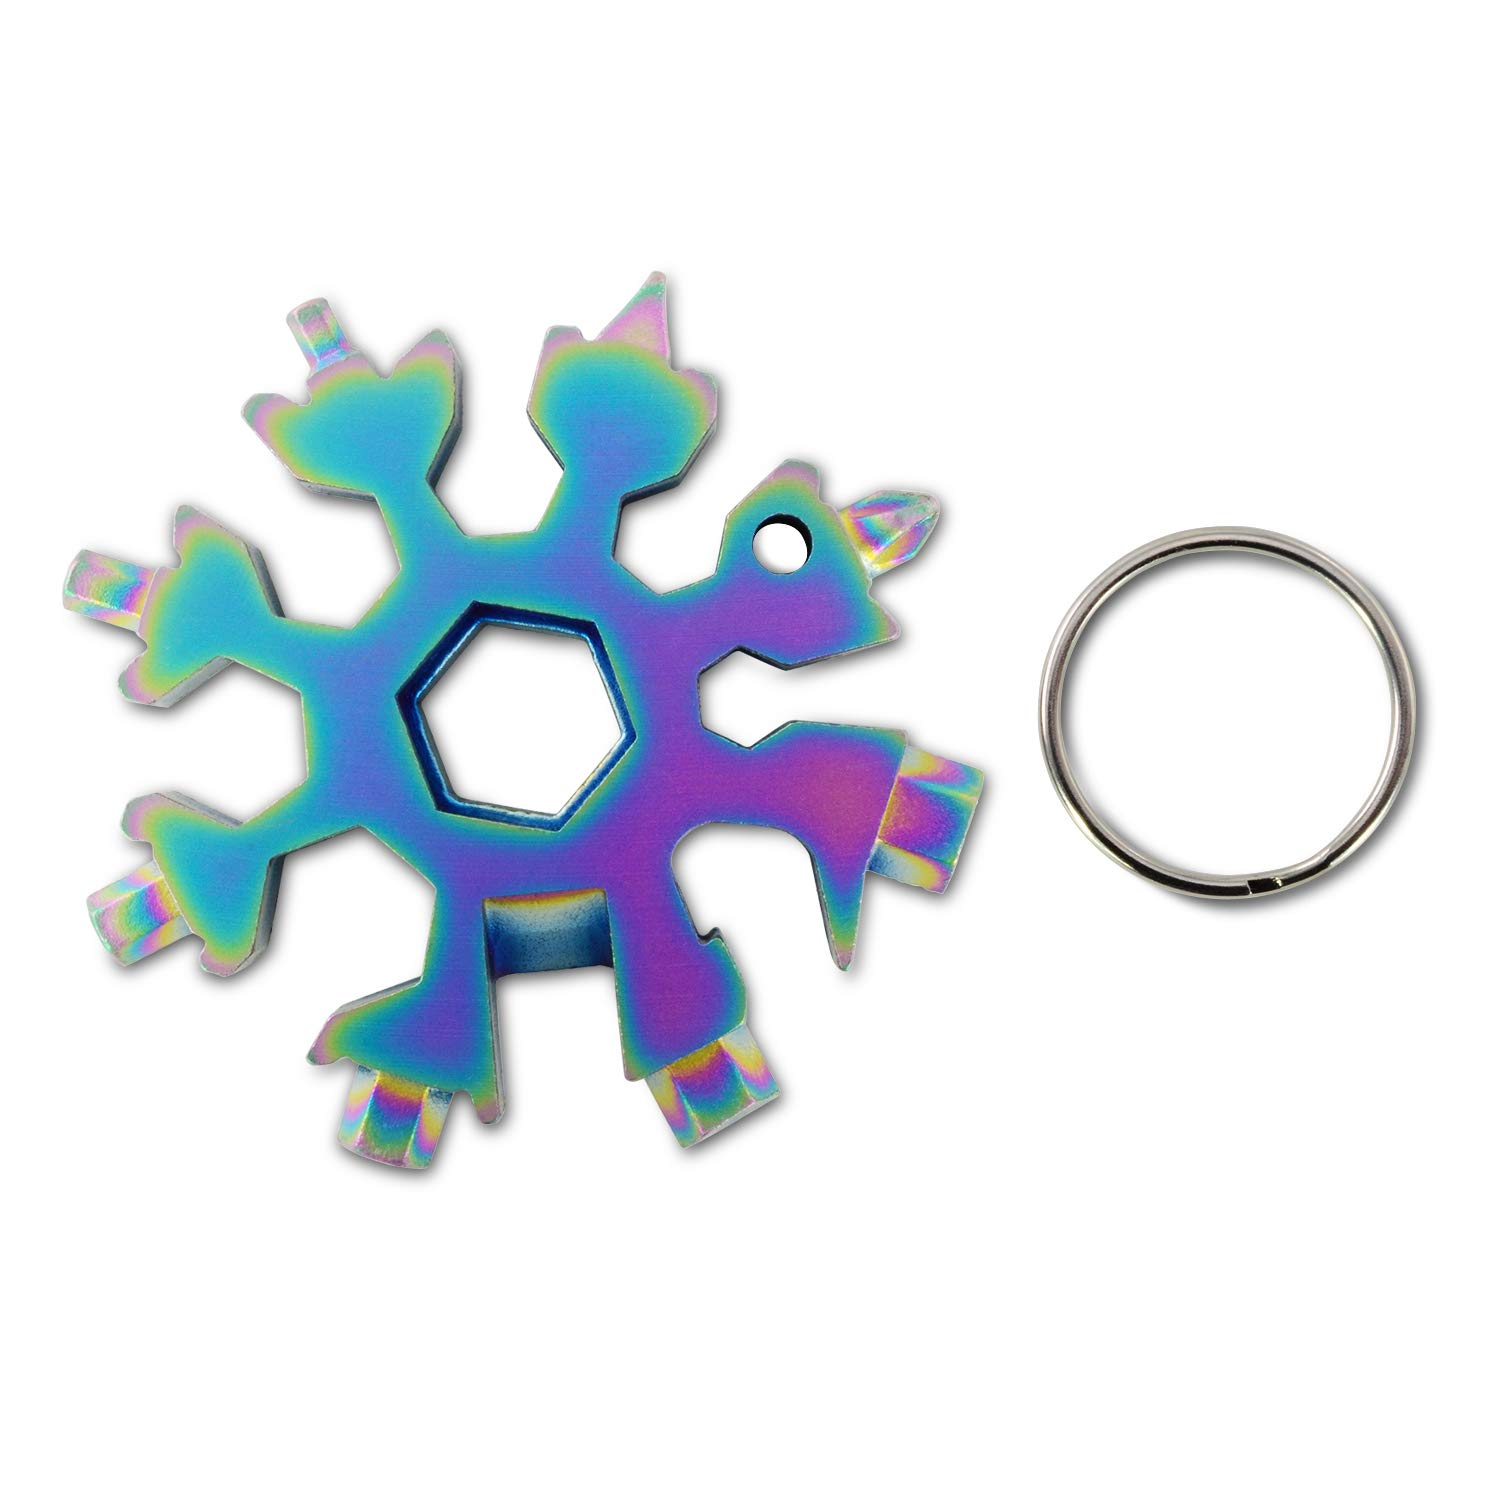 ROSE KULI Snowflakes Multitools - 18 in 1 Multi Tools Portable Wrench Screwdriver Pocket Multi-Tools for Open Key, Rainbow